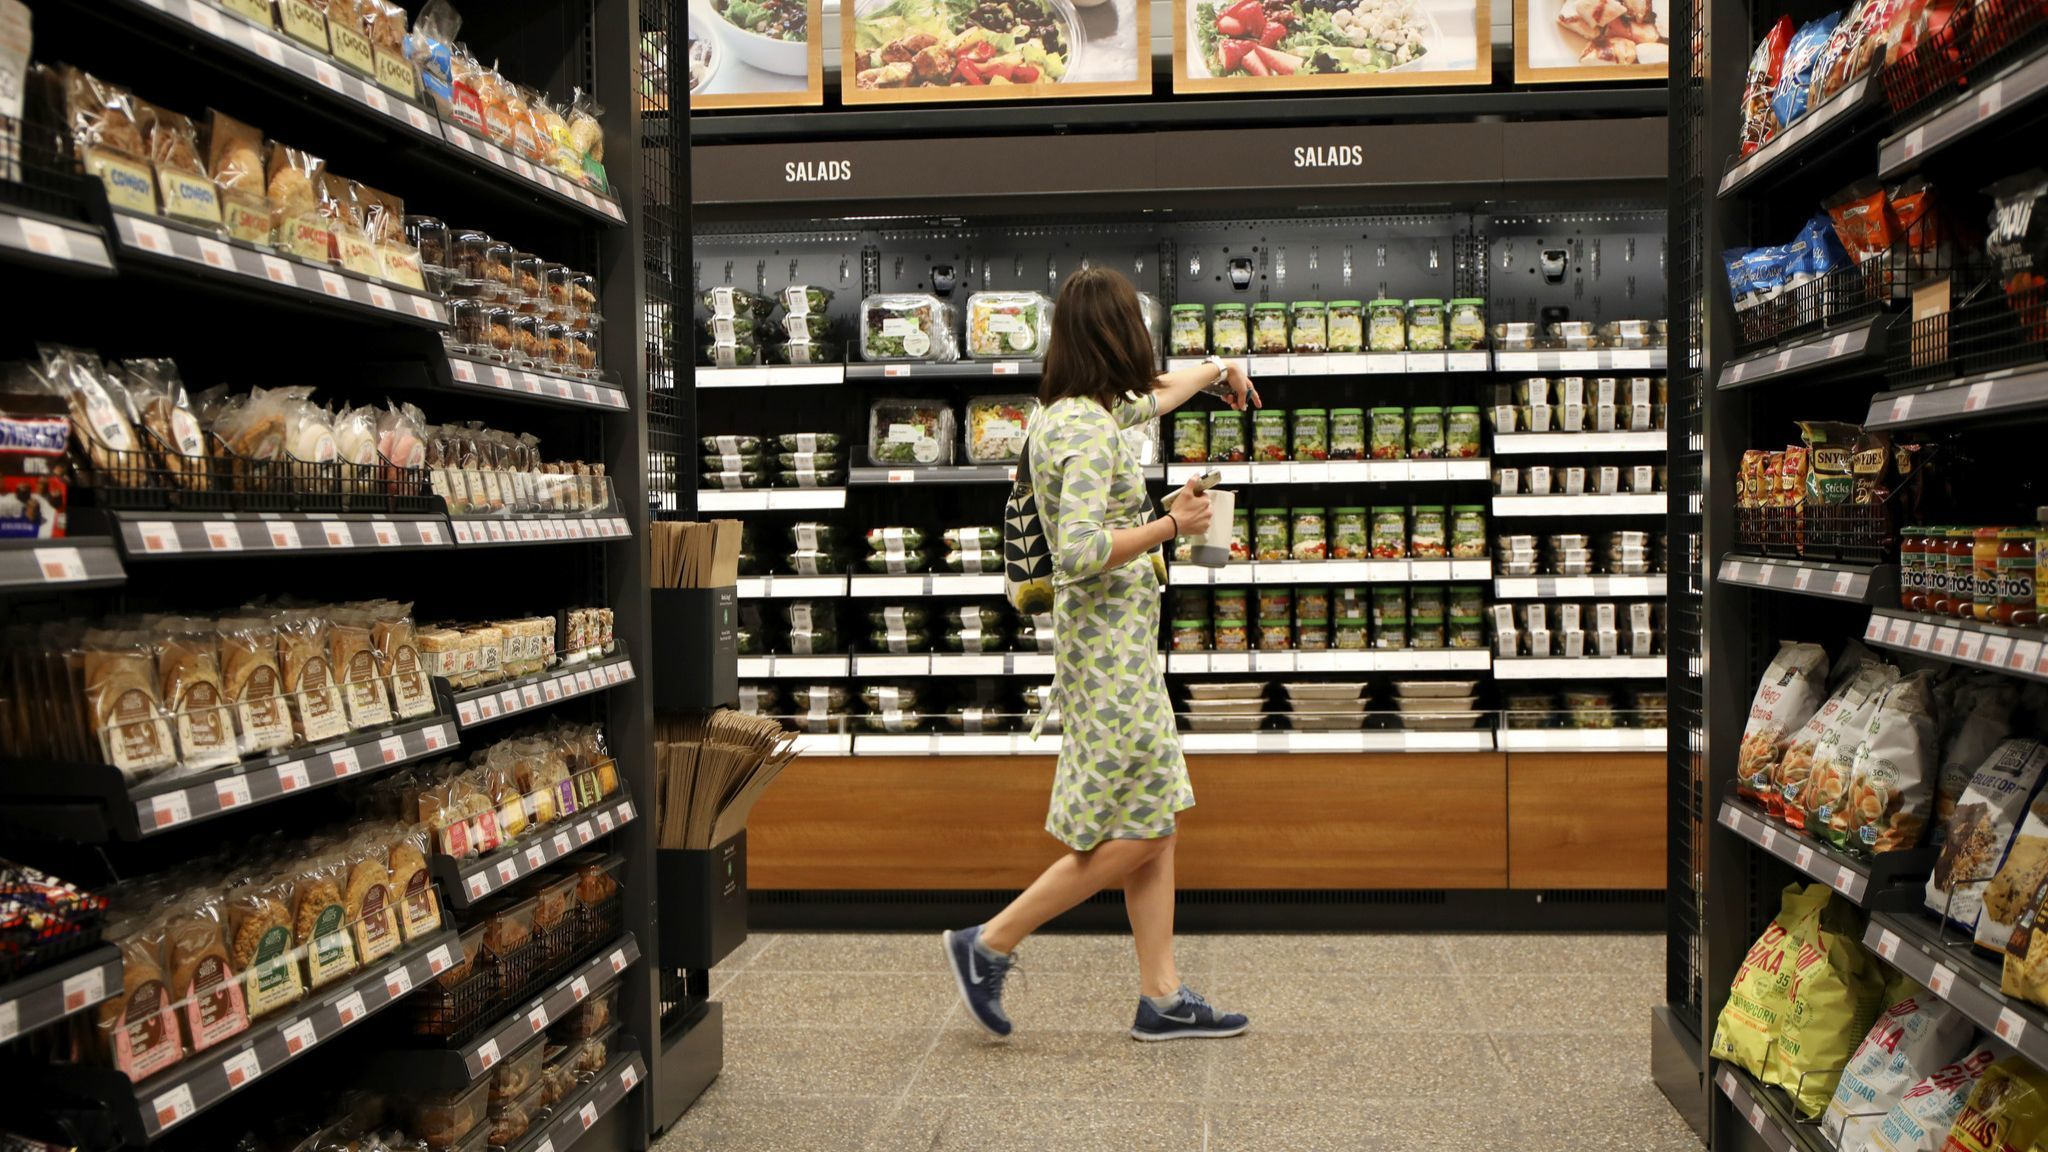 Amazon Go is opening two more cashierless stores in Chicago. 3,000 nationwide by 2021? We'll see.